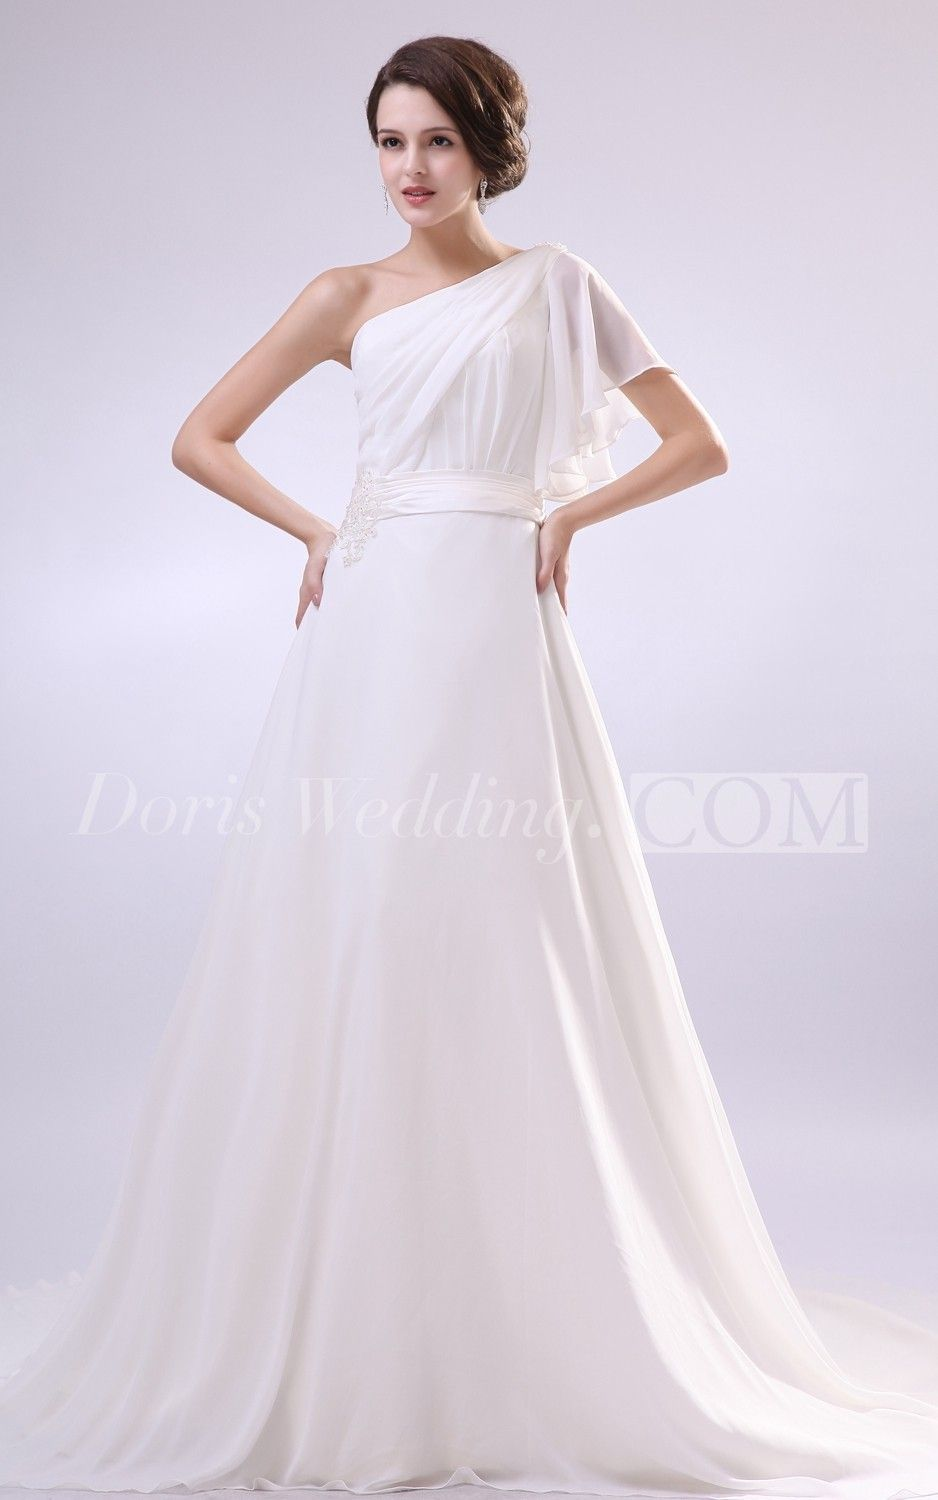 Beaautiful Cap Sleeves Wedding Dress with Beaded Sash and One Sleeve #DorisWedding #beautiful #wedding #dresses #affordable #wedding #dresses #wedding #dress #styles #unique #wedding #dresses #backless #wedding #dresses